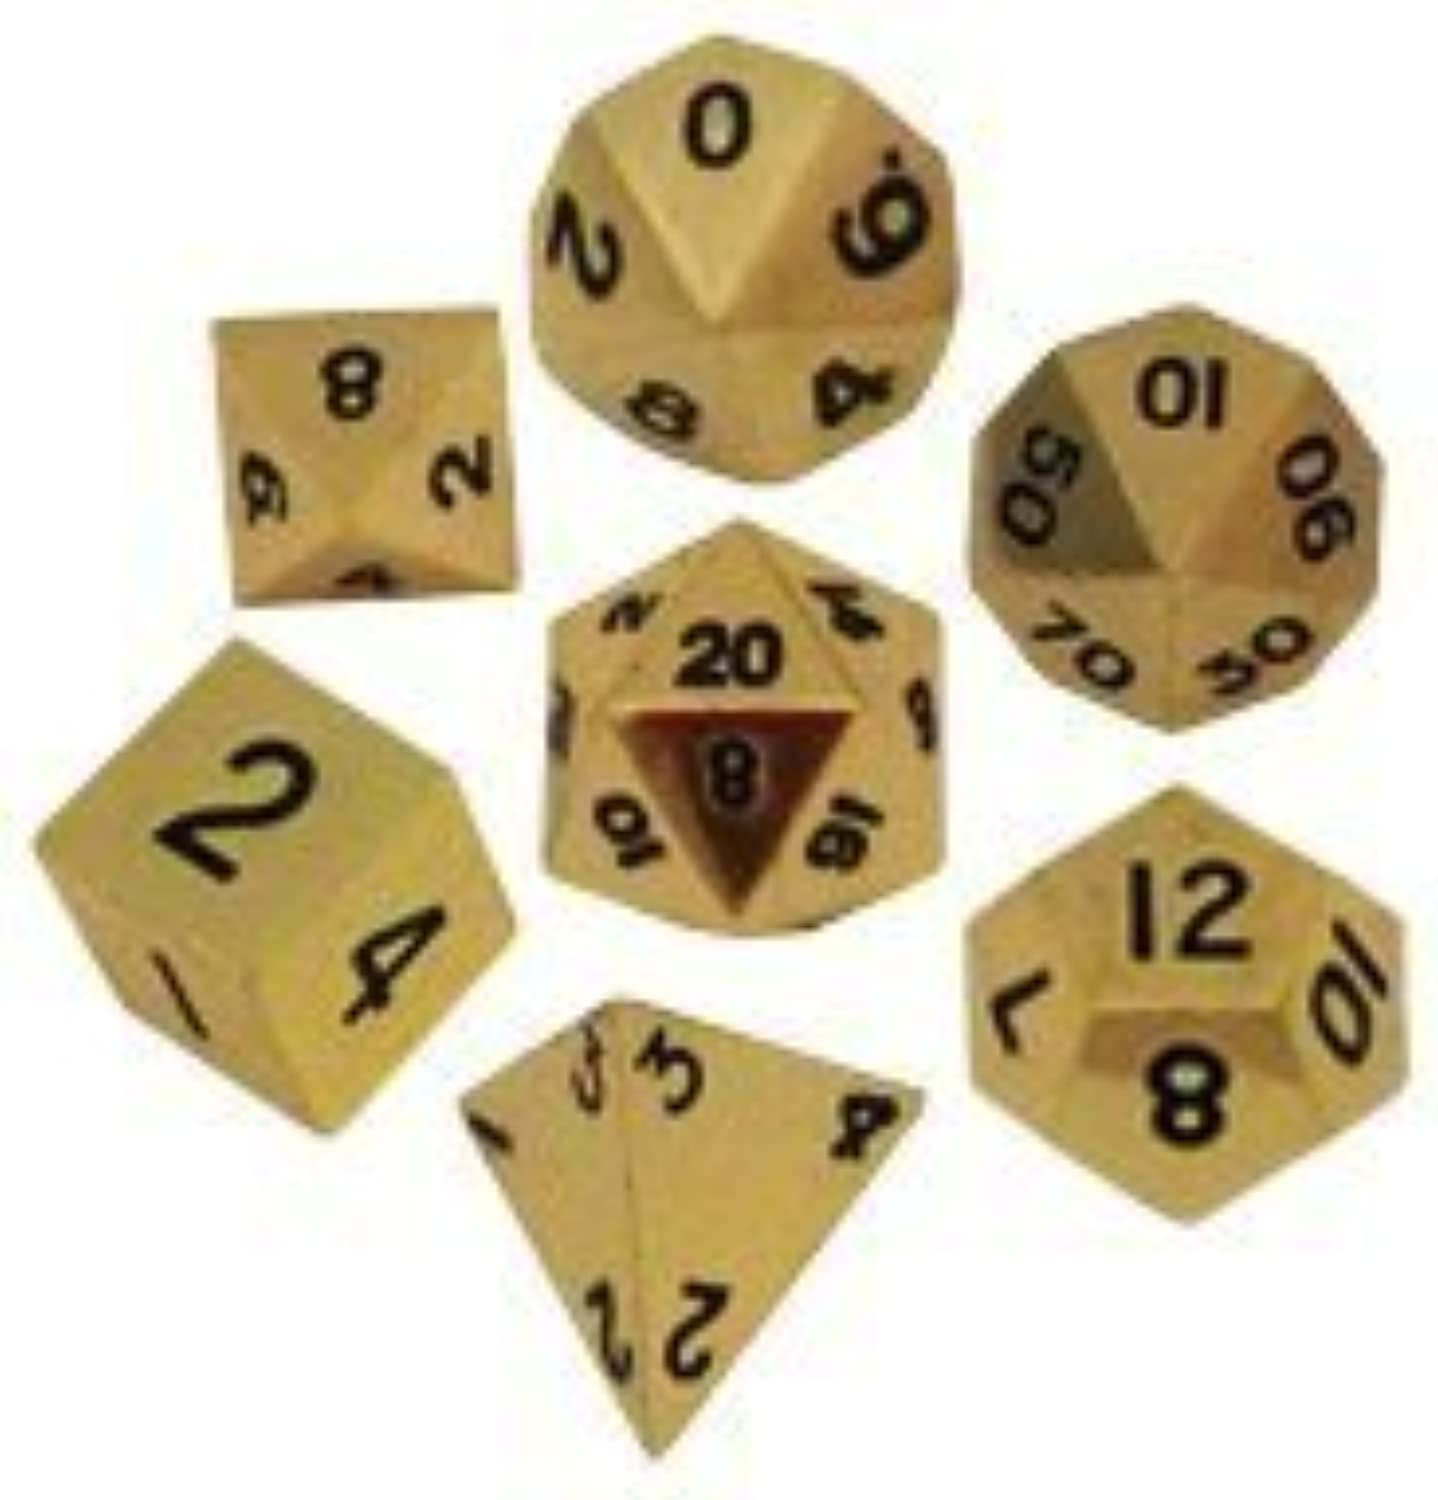 Metal Dice Polyhedral Set of 7 die (7) gold by Metallic Dice Games